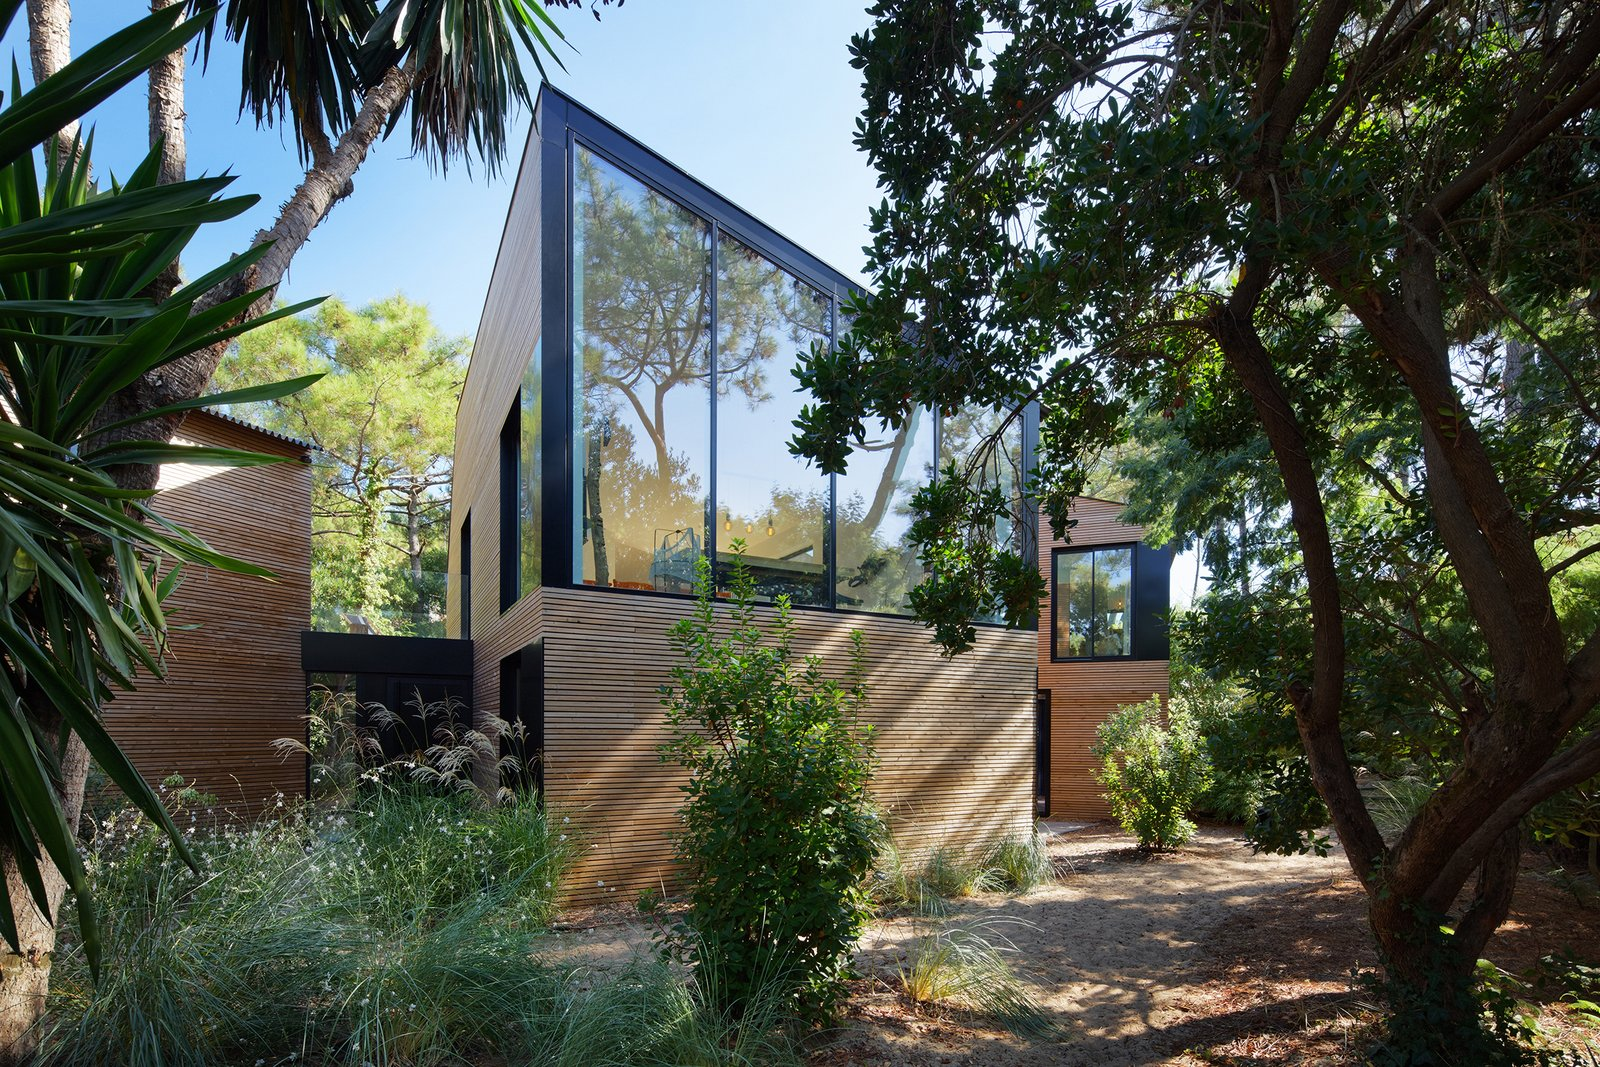 Multiple Modern Cabins Make Up This French Holiday Home